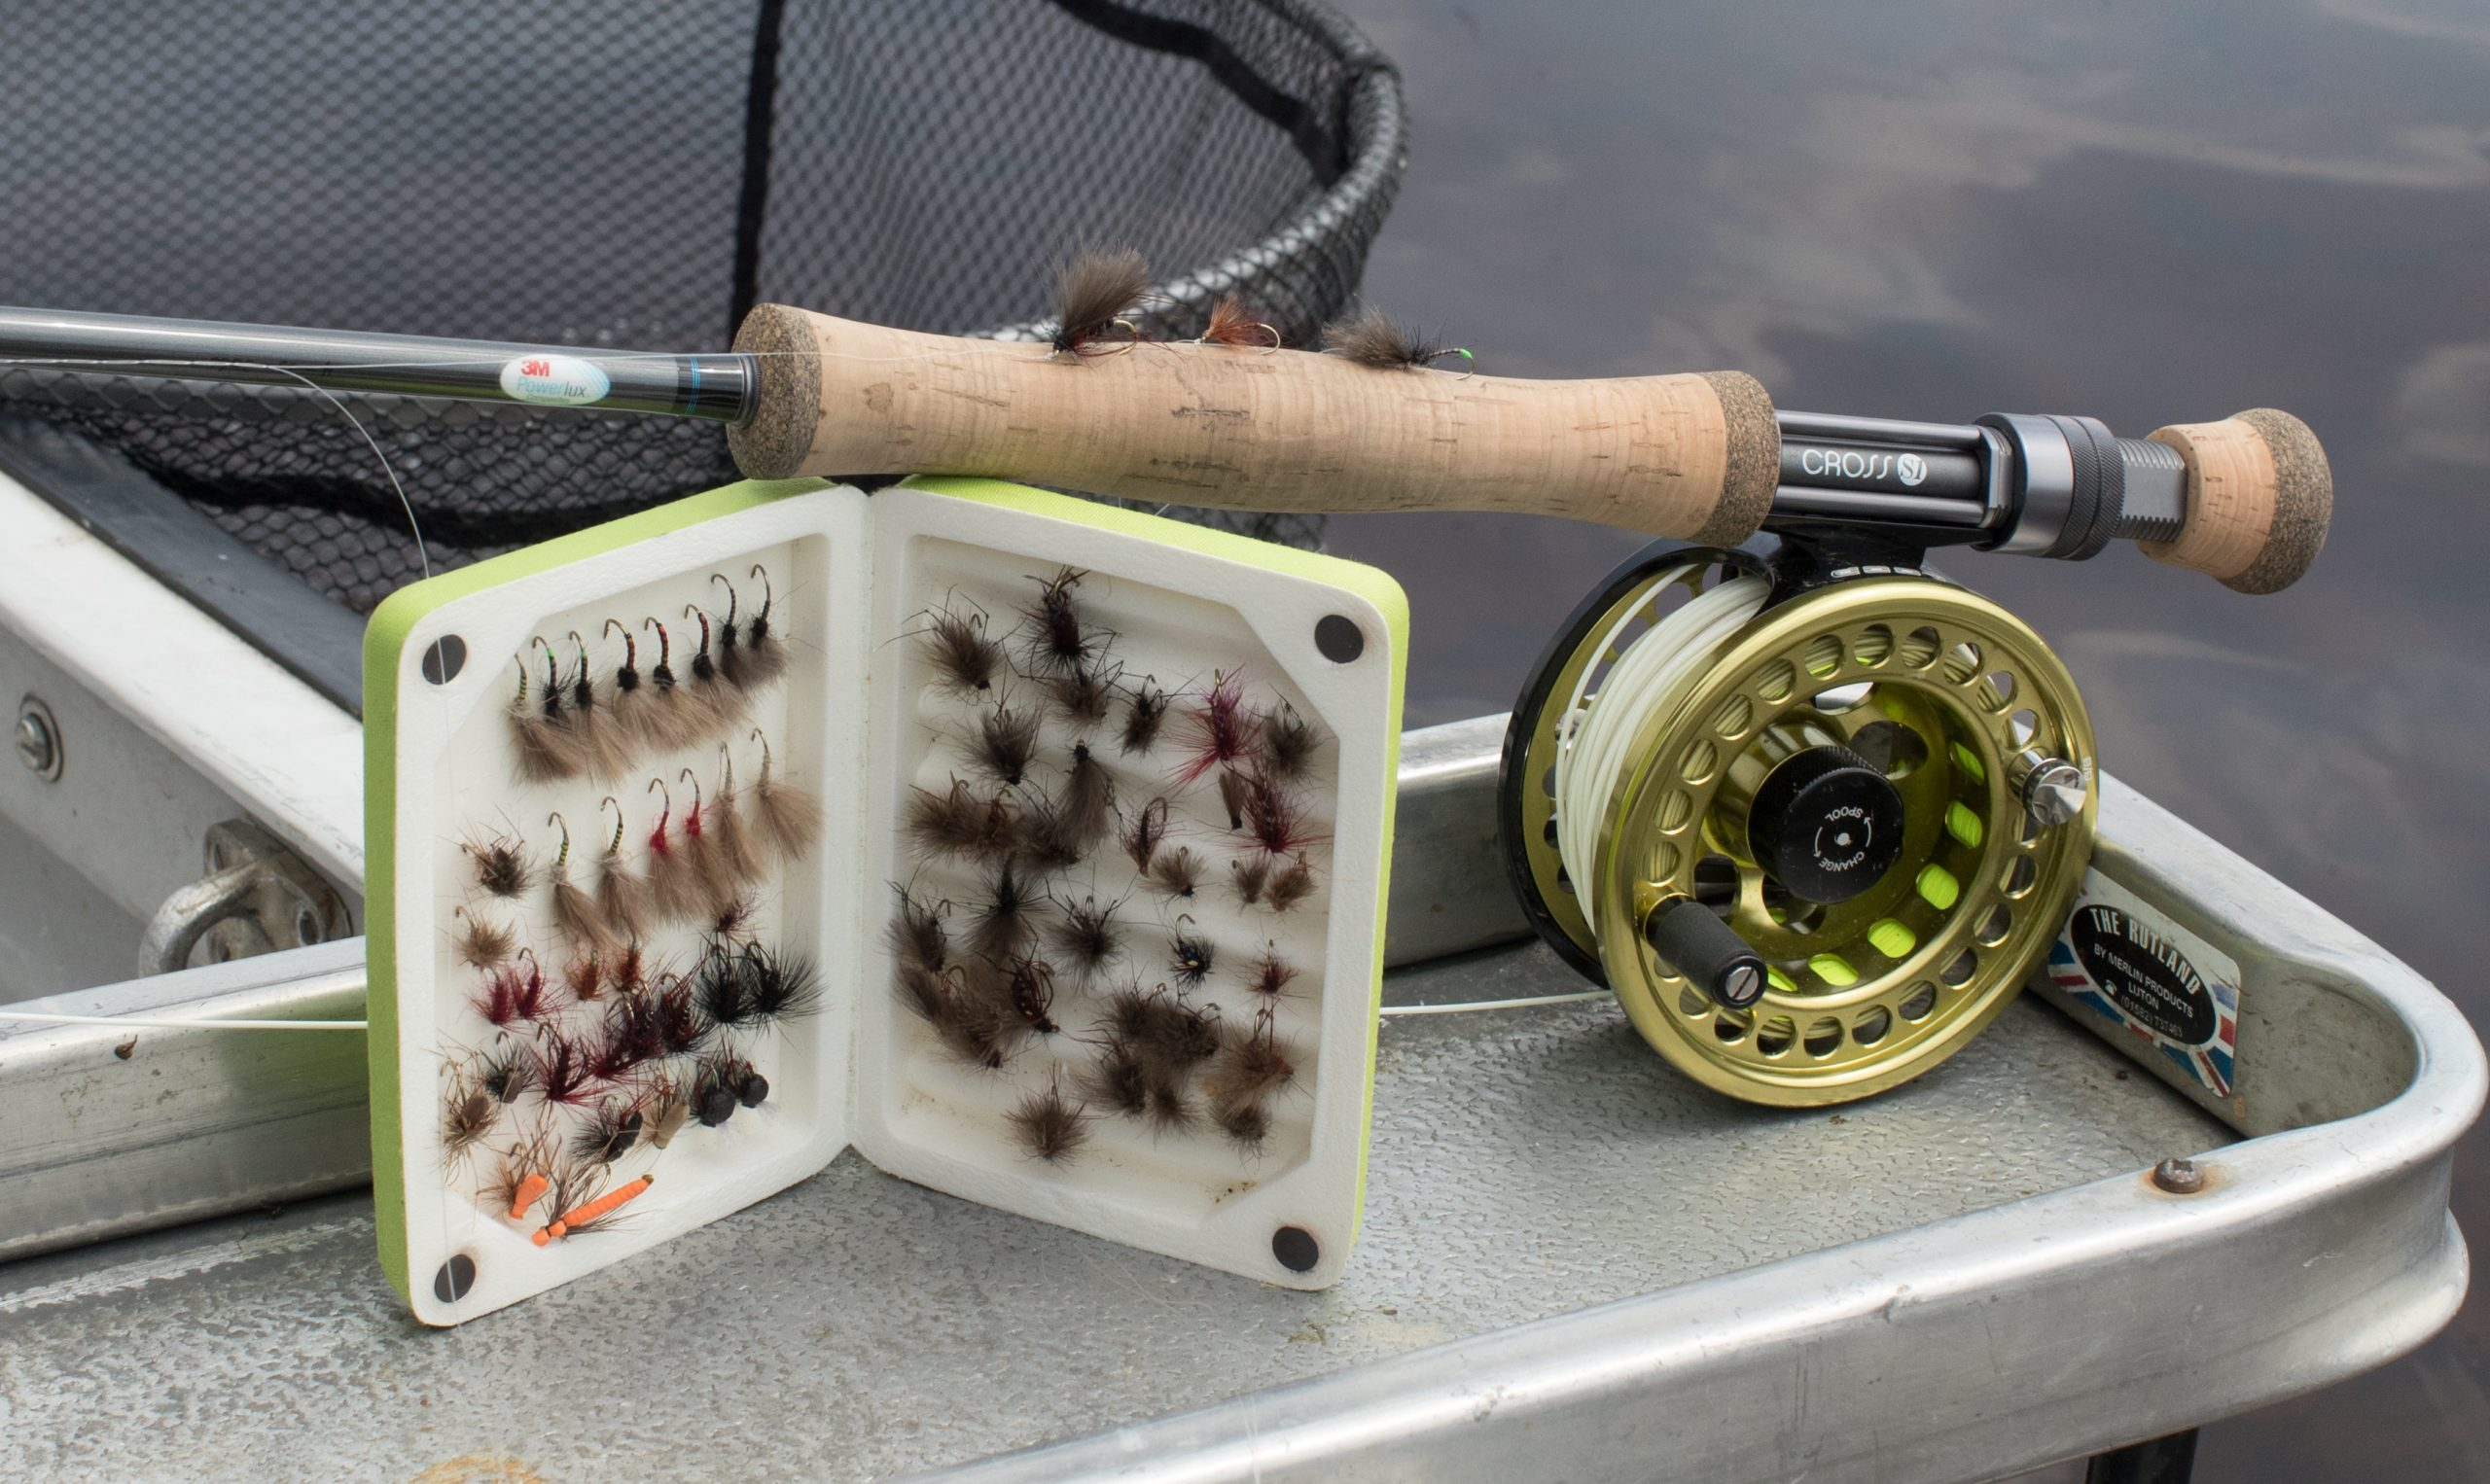 Top dry flies for llyn brenig and the Loop 7 x fly rod